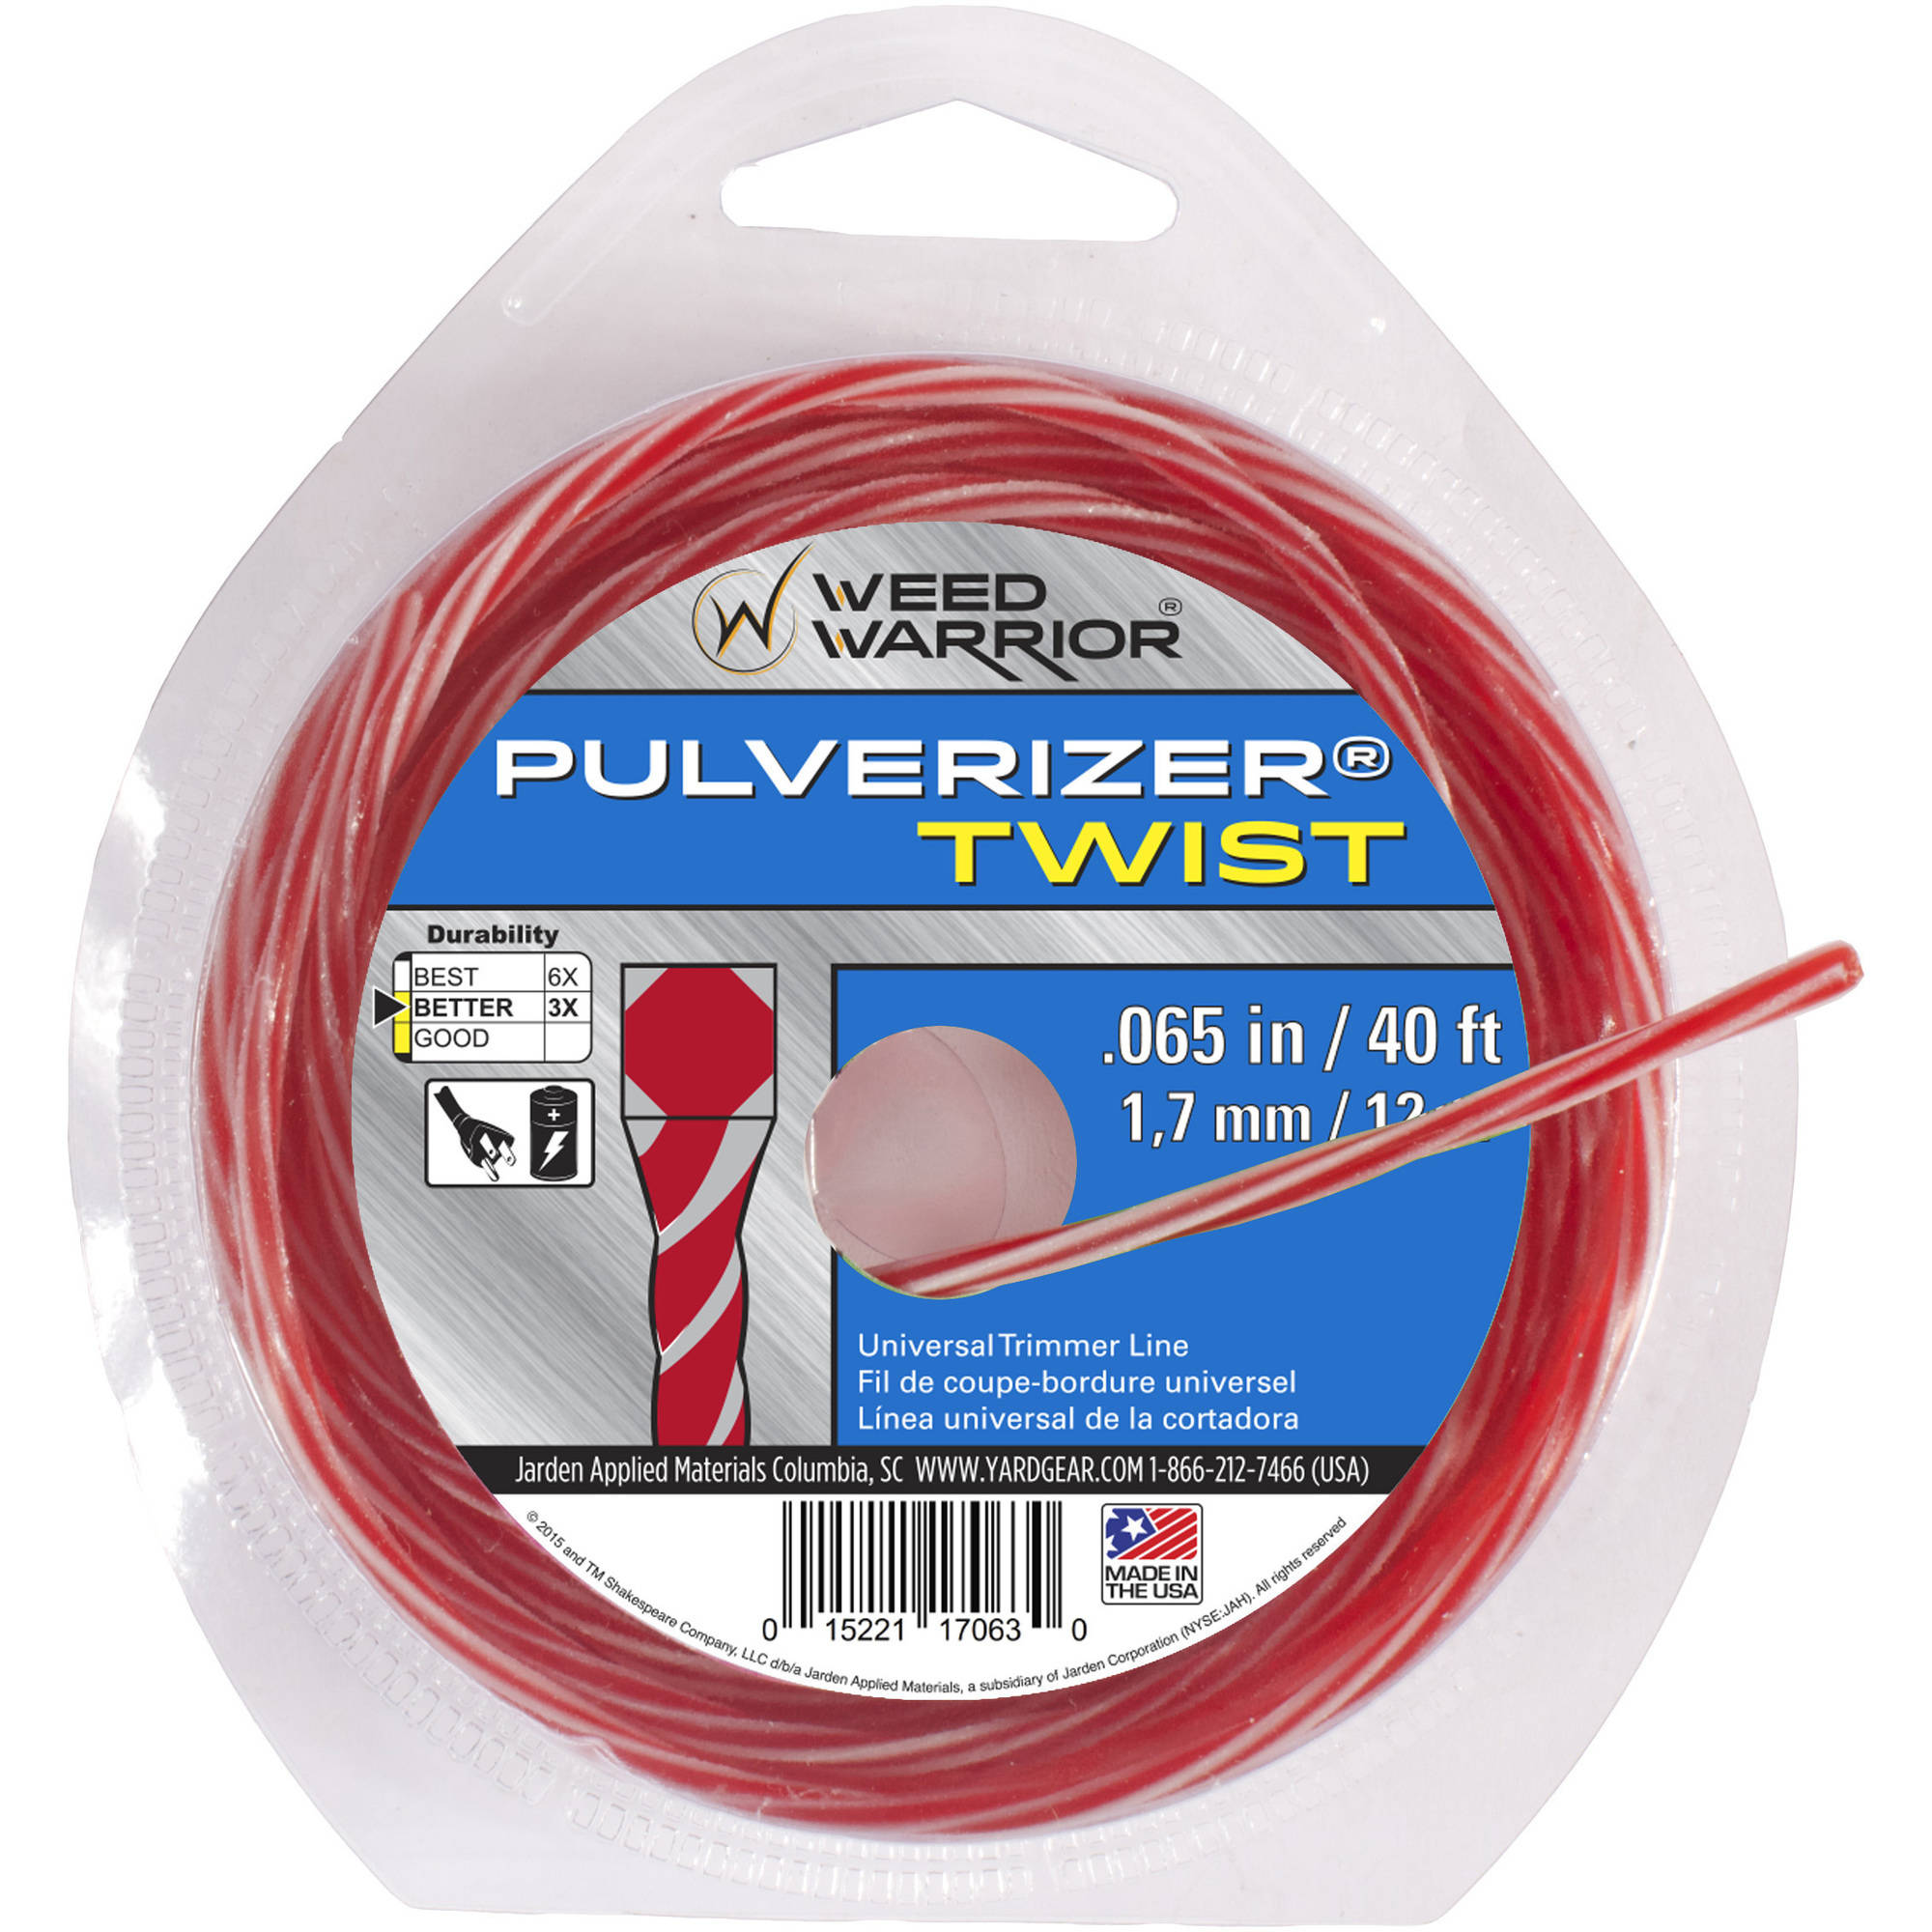 Weed Warrior Replacement Bicomponent Twist Trimmer Line .65, 40 ft. Loop Donut